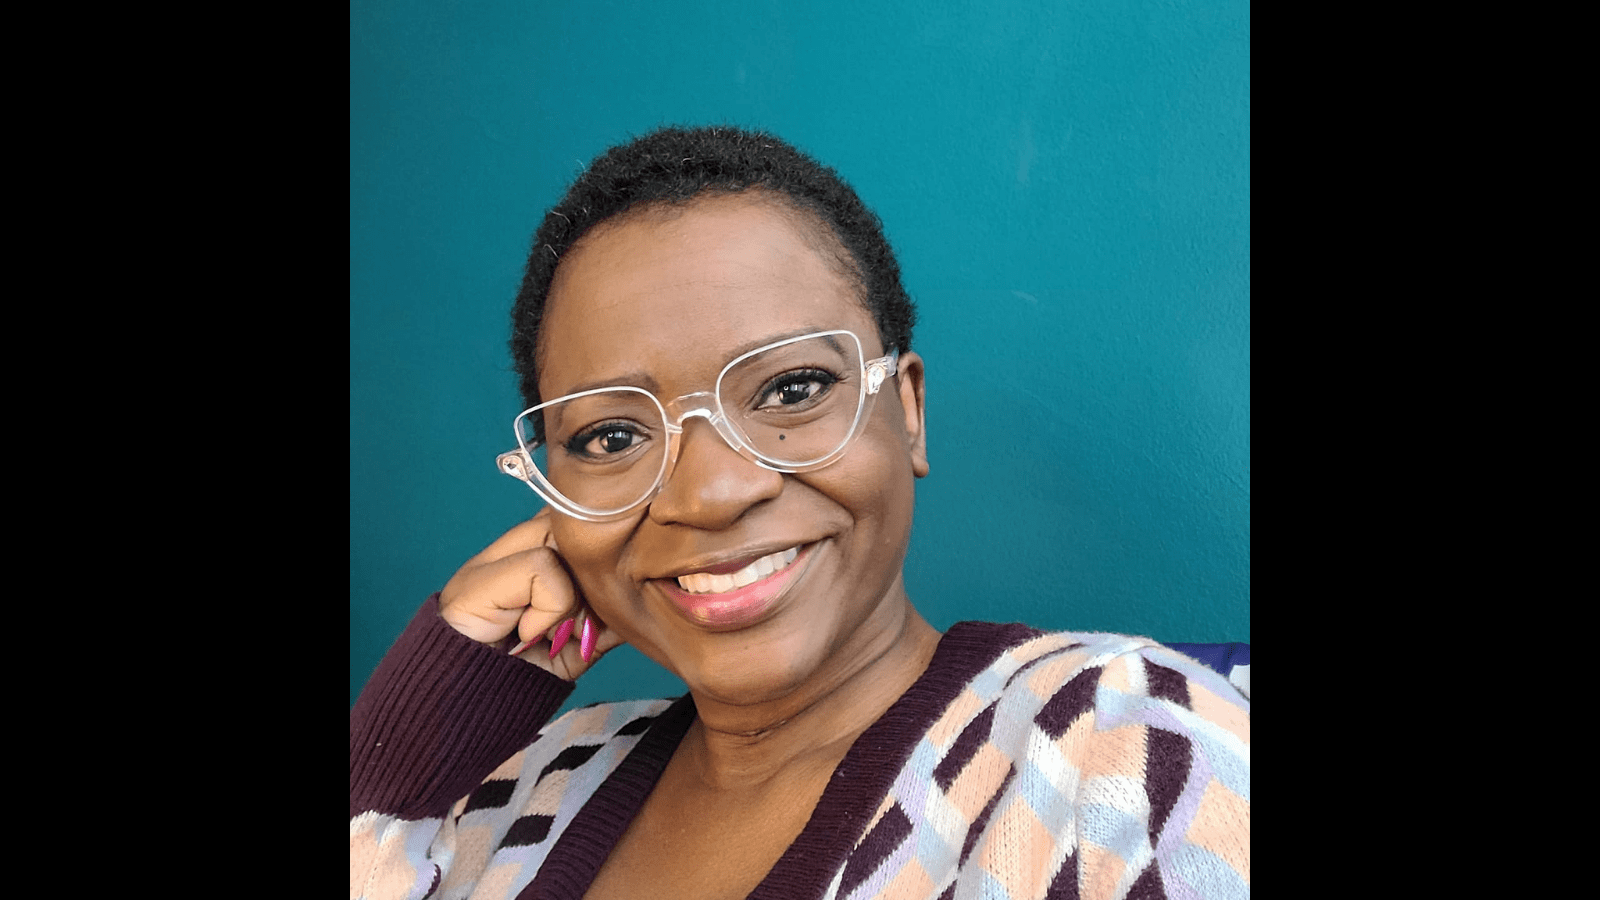 Graphic with a black background with a photo of a Black femalewith dark brown complexion, close cropped black hair, wearing a wide smile, clear plasticglass frames and sweater with a geometricpattern in eggplant, sky blue, white and light peach colors.